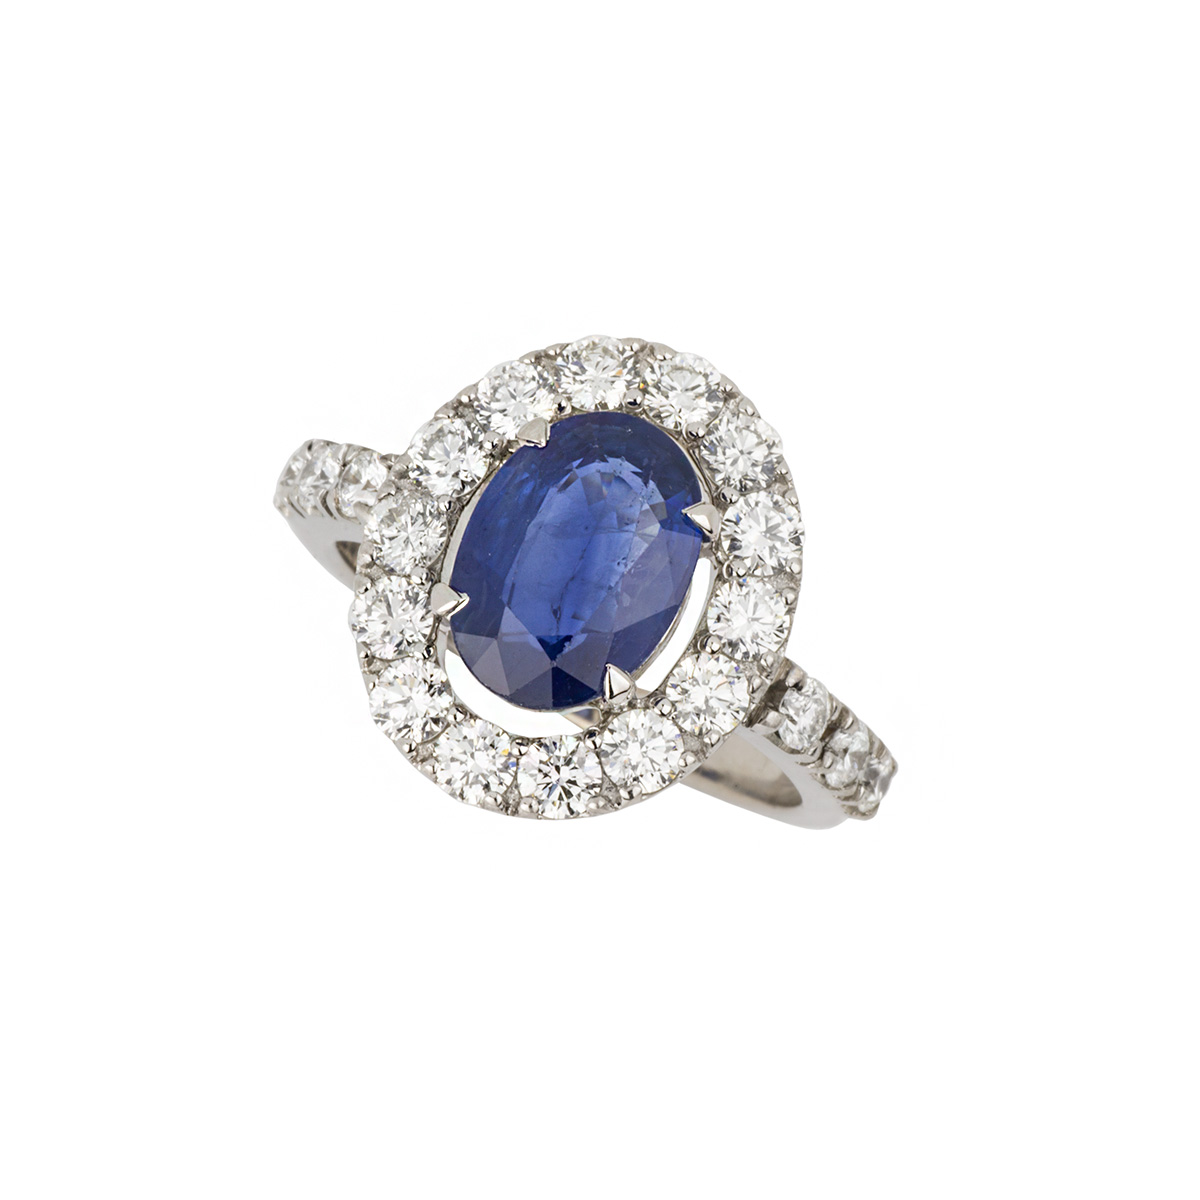 18k White Gold Sapphire and Diamond Dress Ring